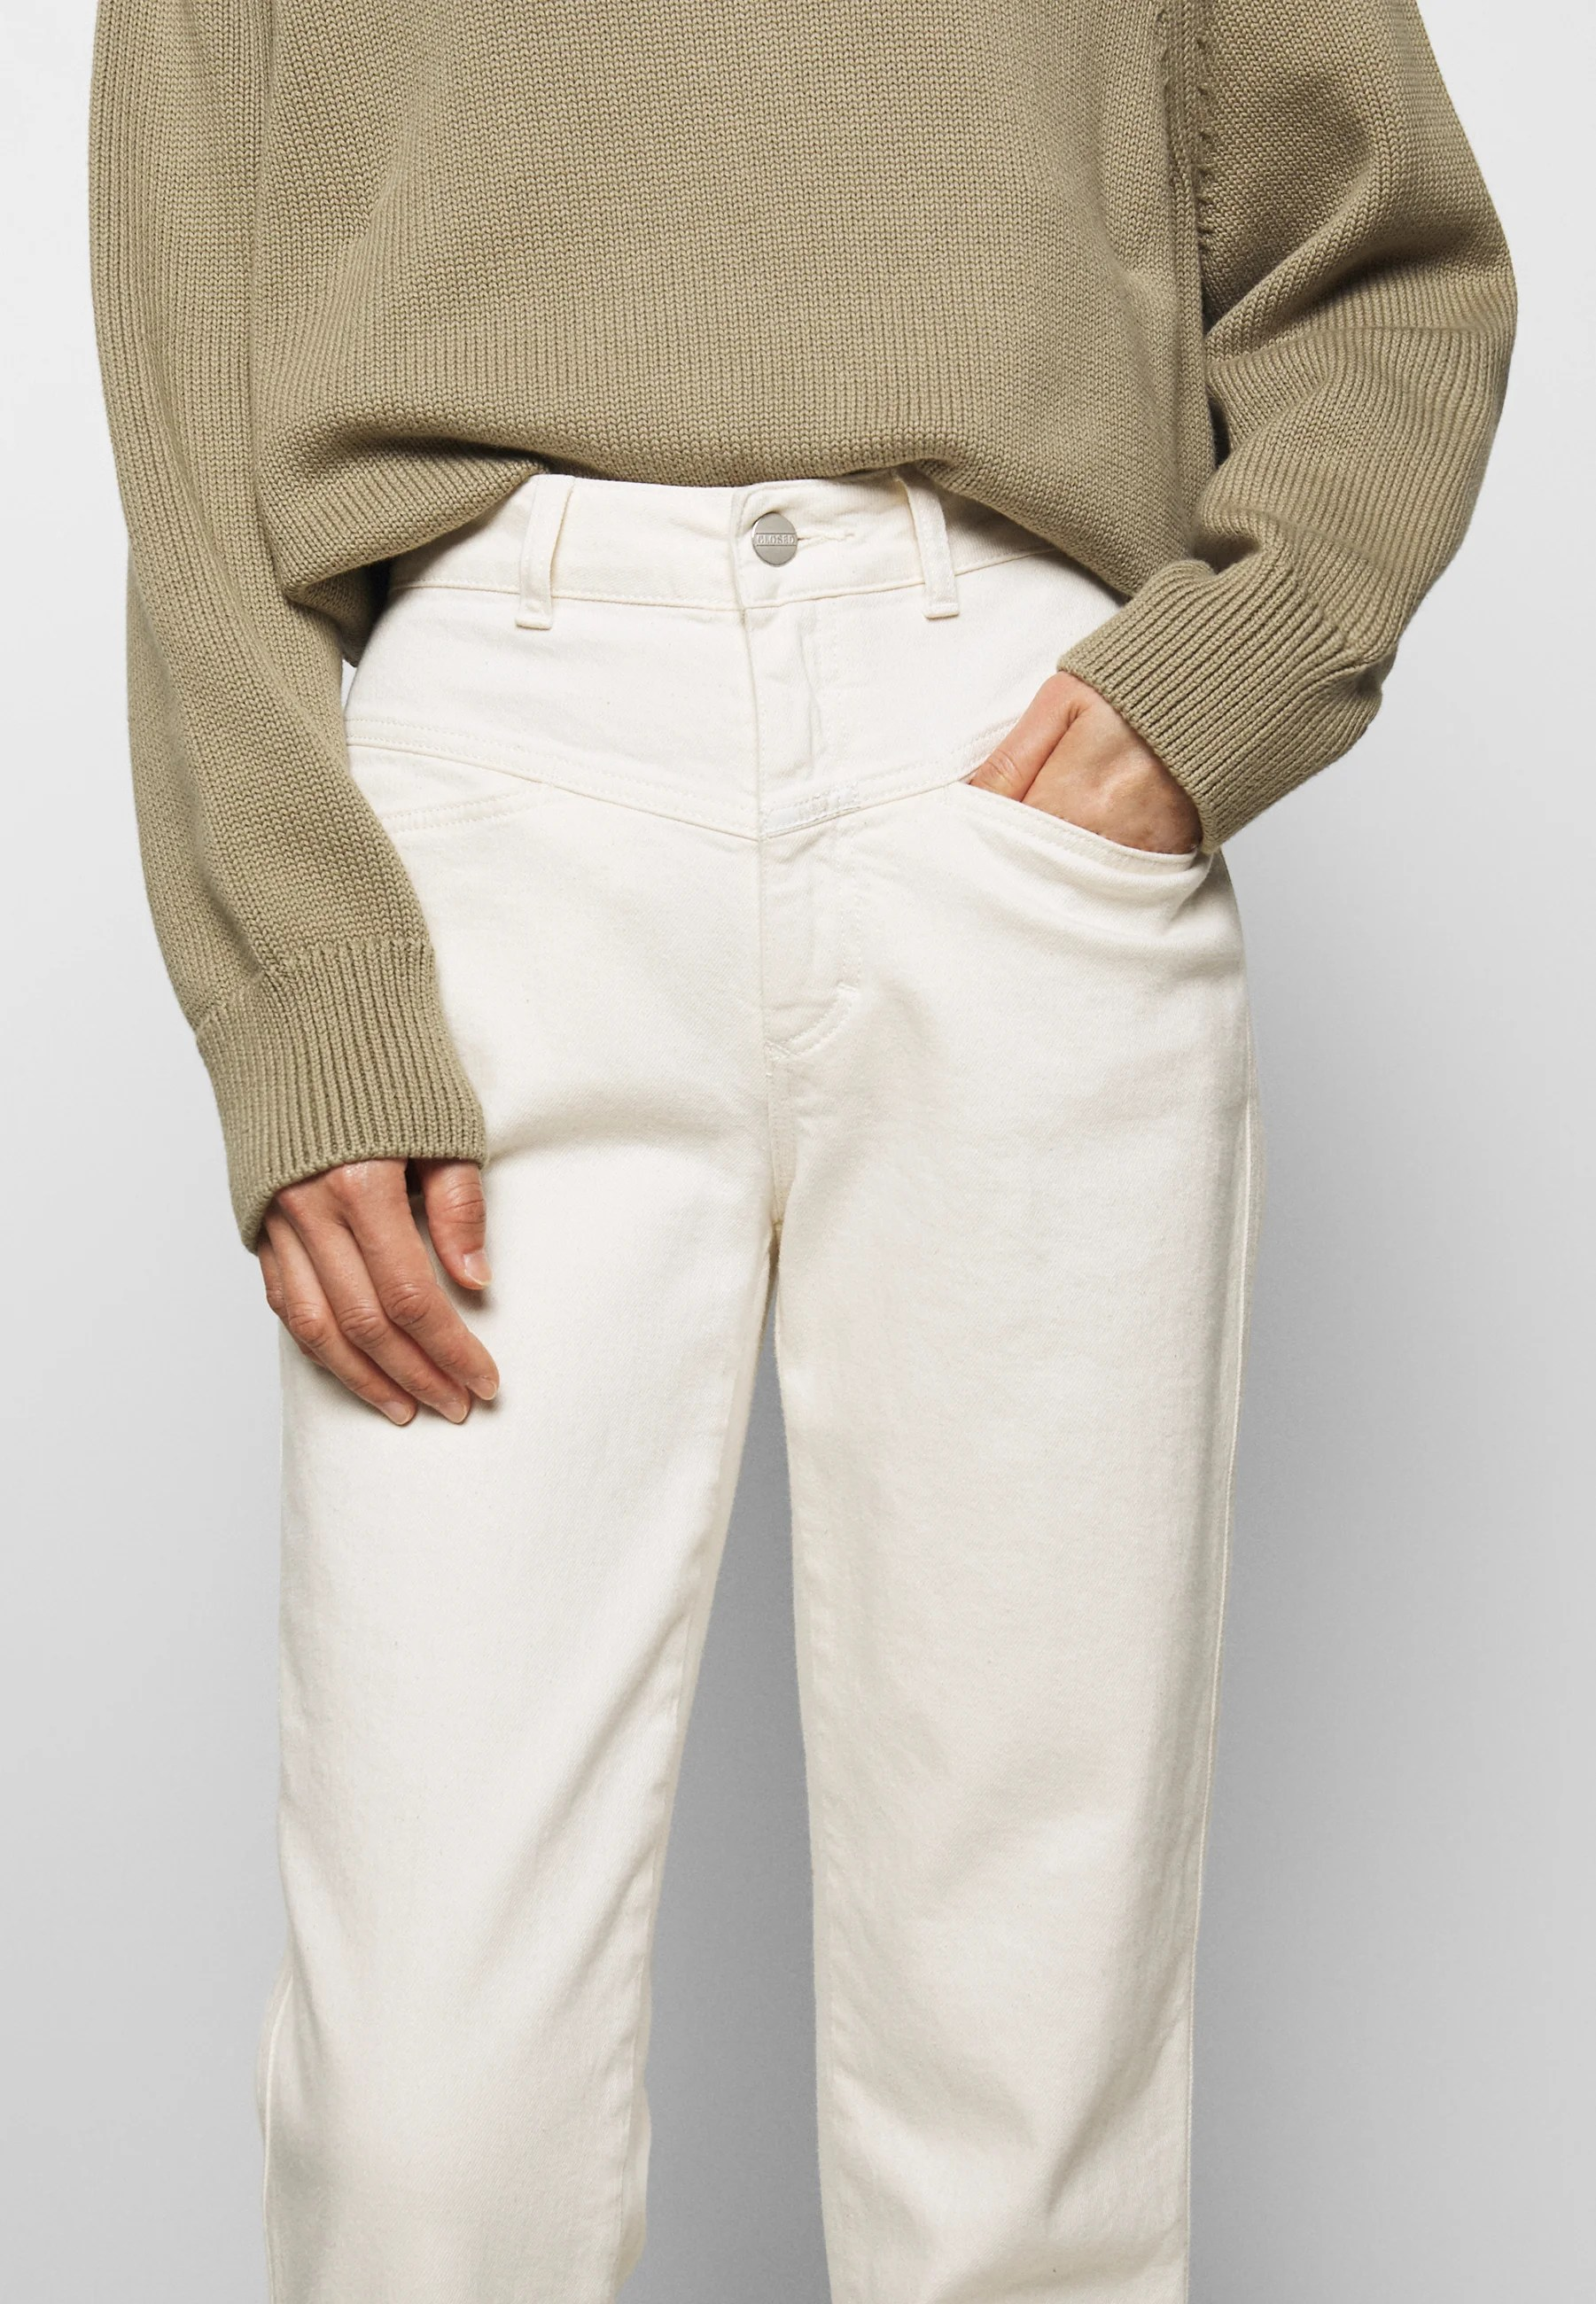 Closed Pedal Pusher Jeans Relaxed Fit Ecru Offwhite Zalando At